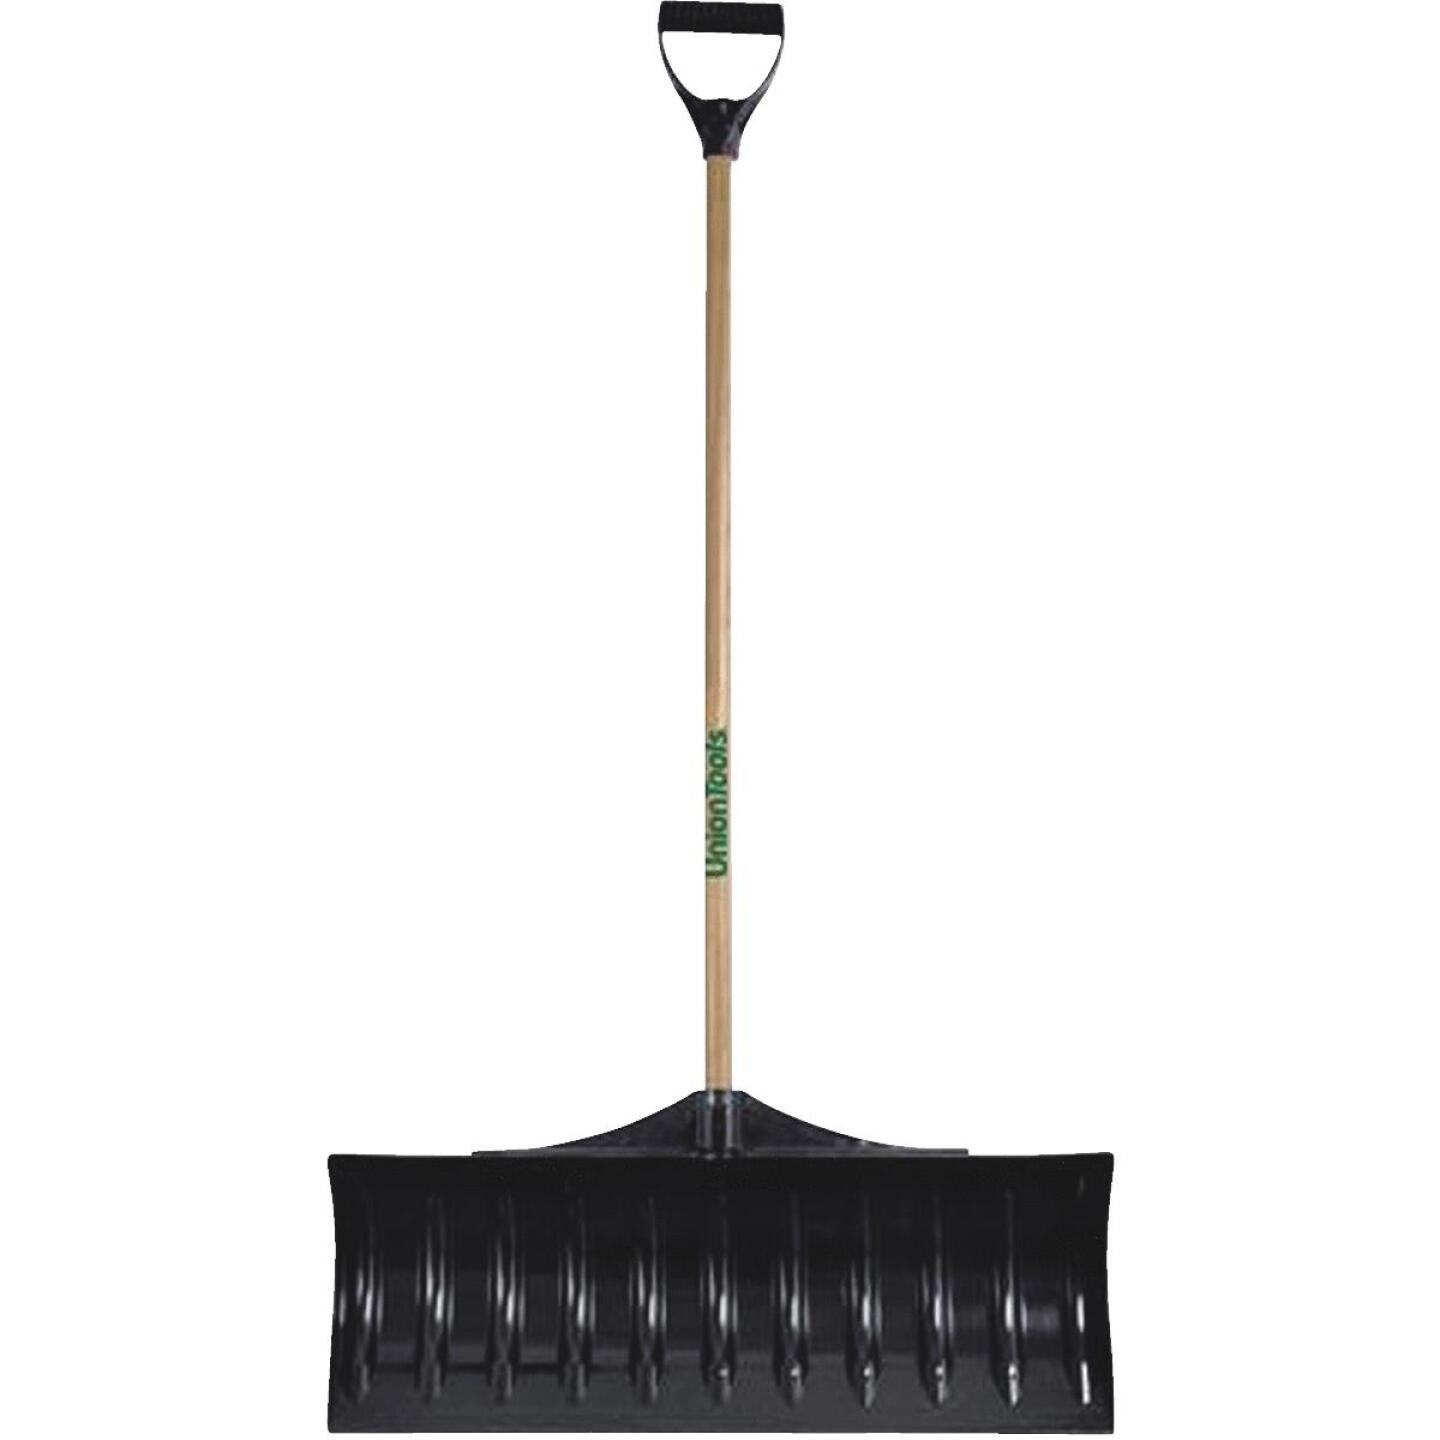 Union Tools 30 In. Poly Snow Pusher with 47 In. Wood Handle Image 1